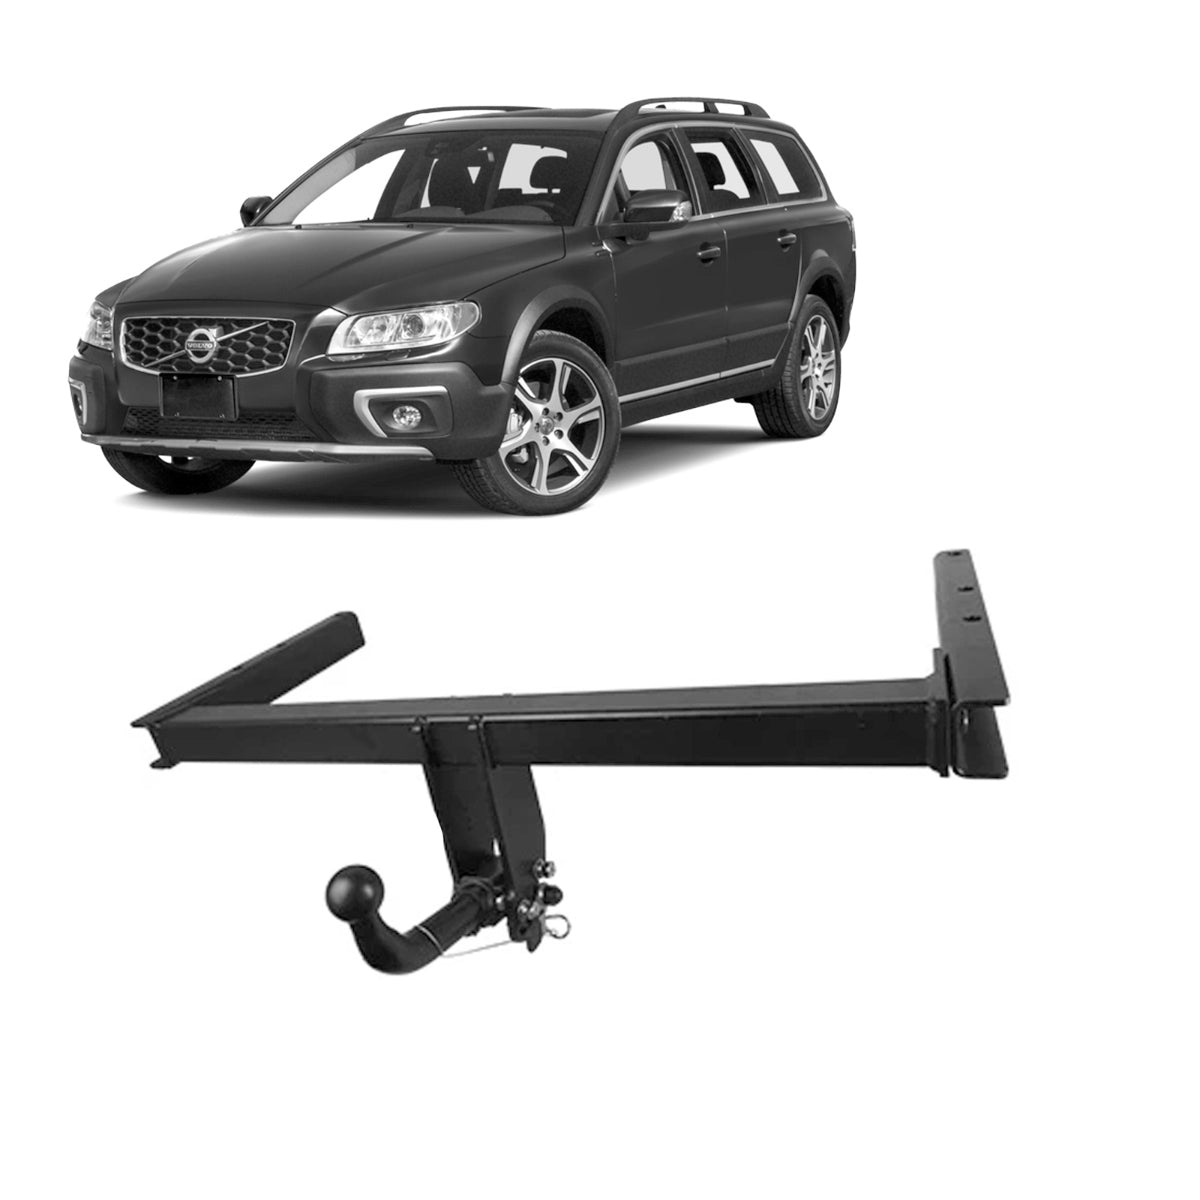 TAG Euro Towbar with European Style Tongue to suit Volvo Xc70 (08/2007 - on)